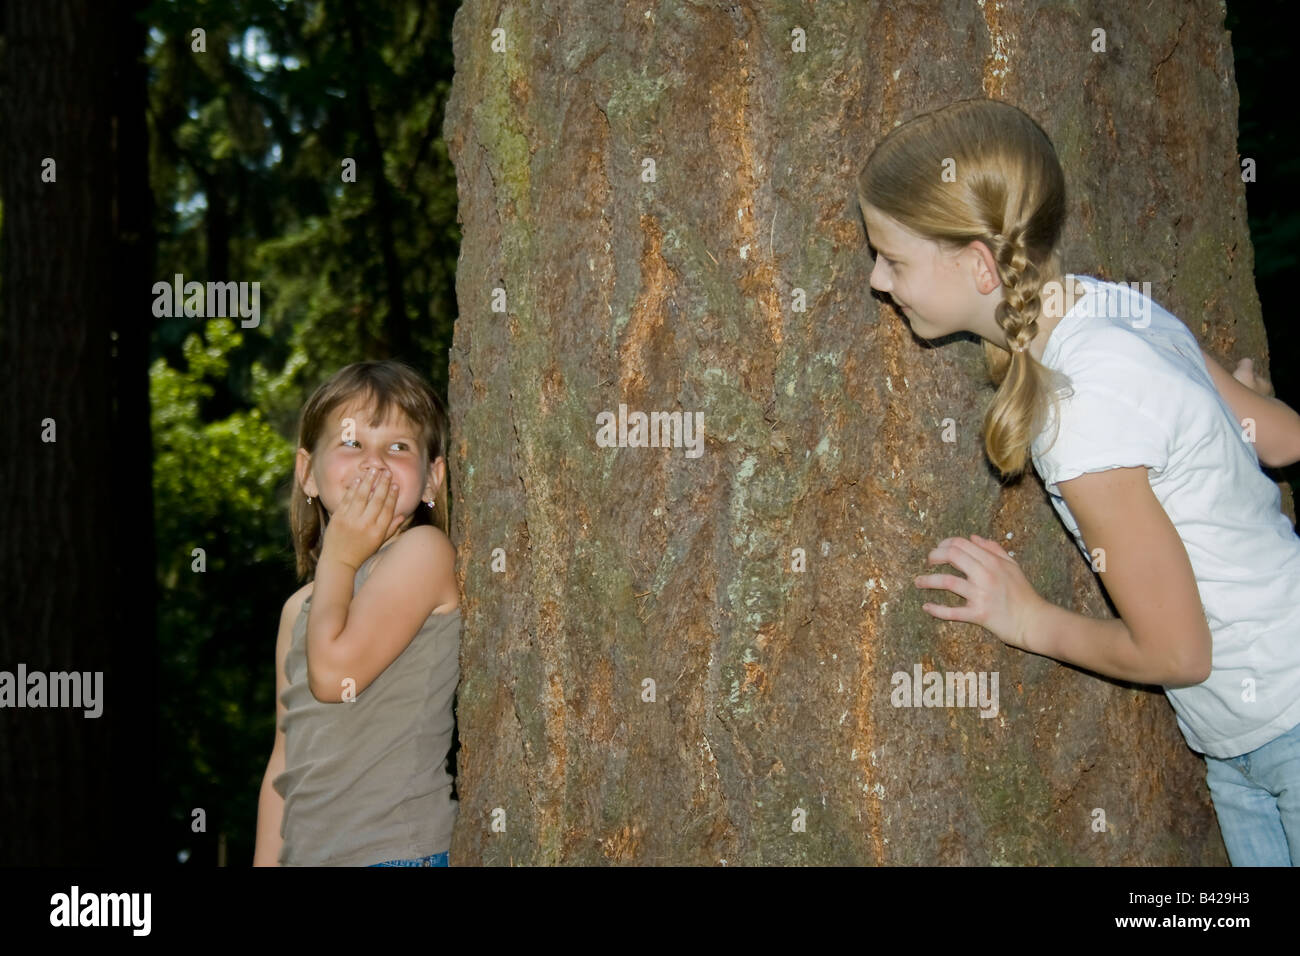 Two young girls playing hide and seek in a forest area - Stock Image